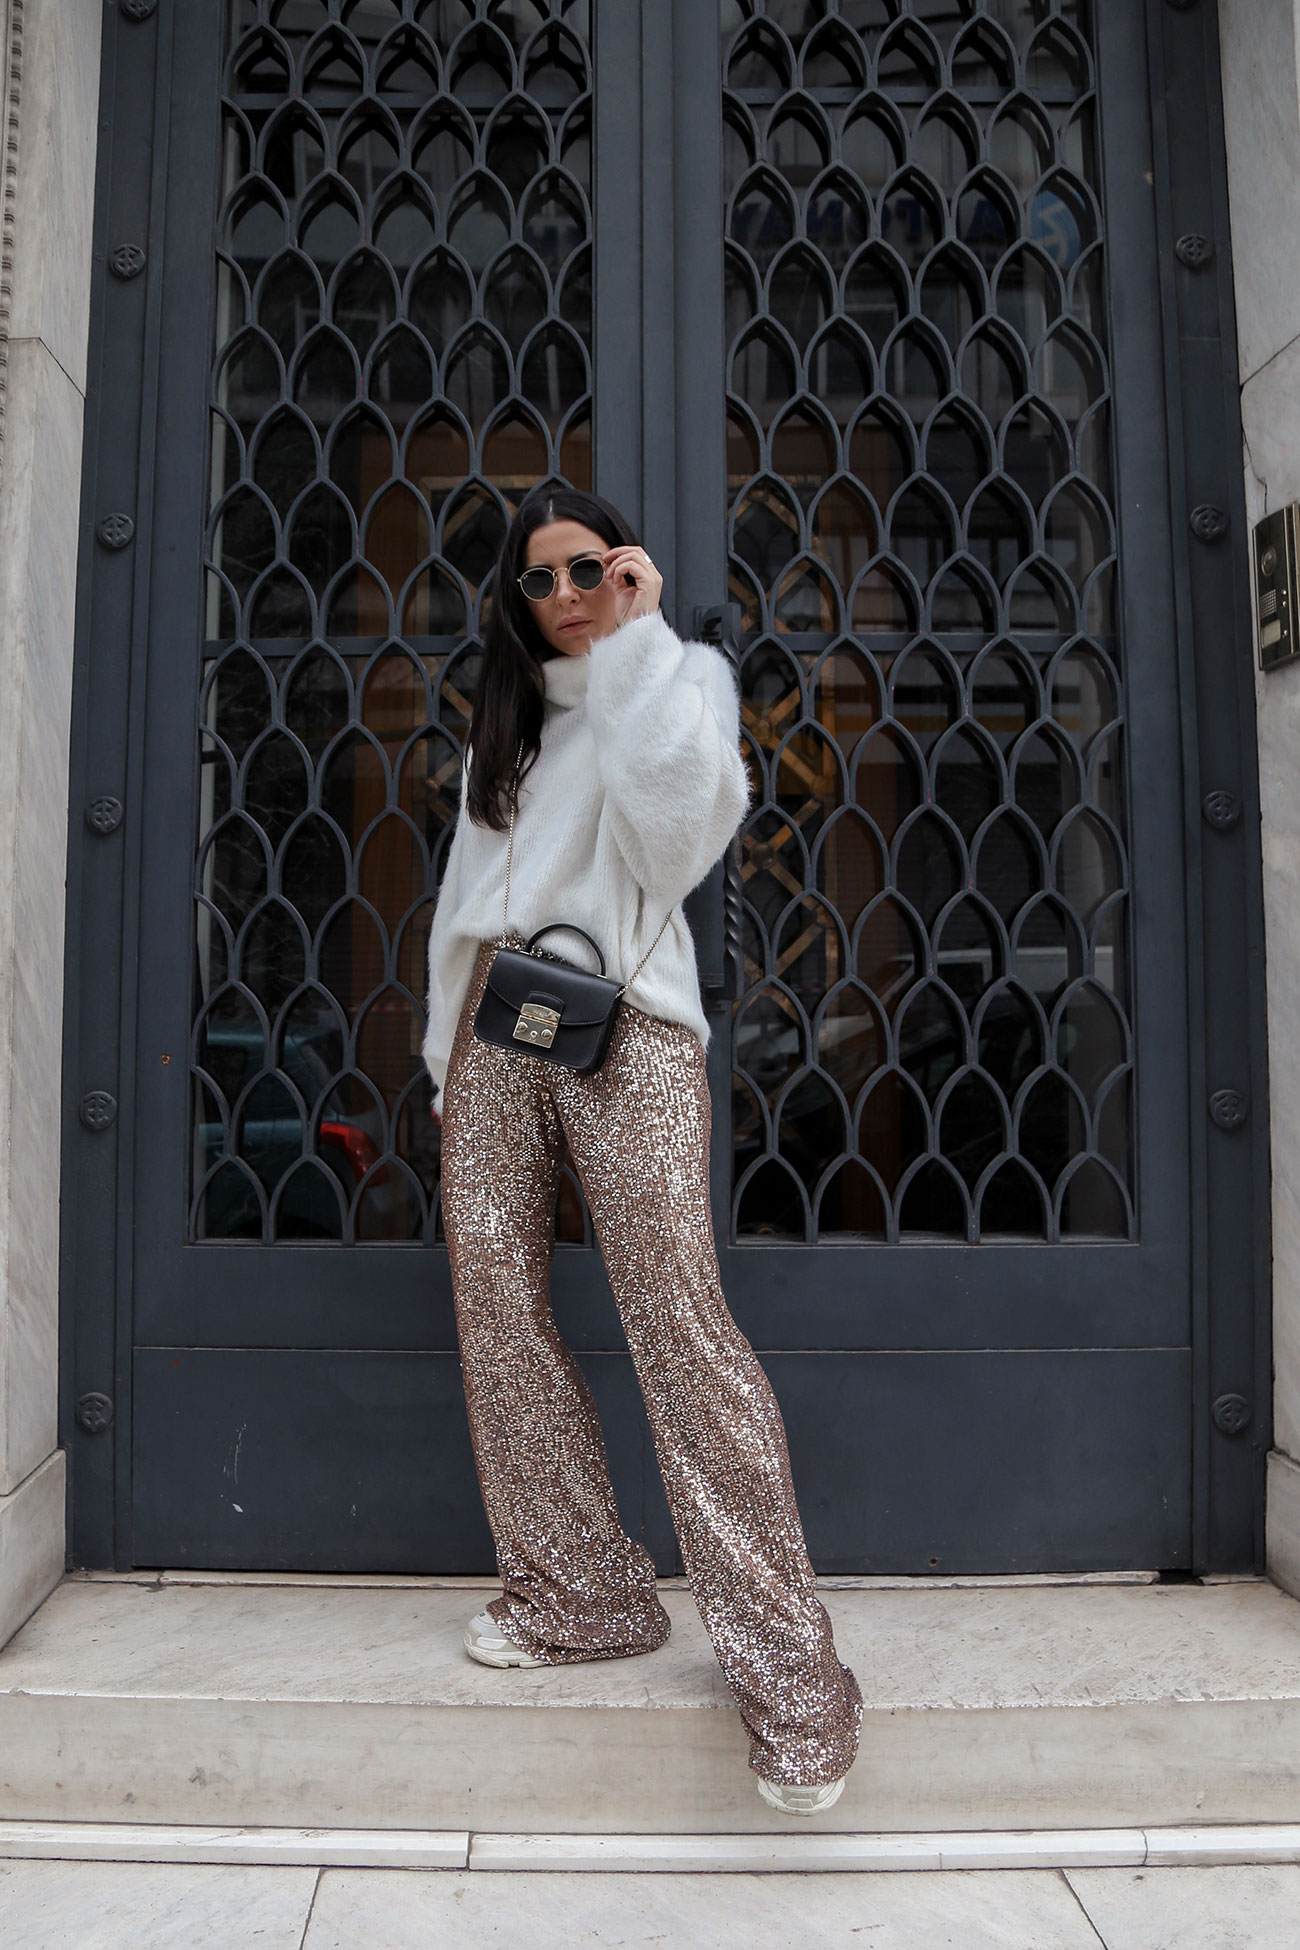 Stella Asteria - how to wear sequins in the daytime